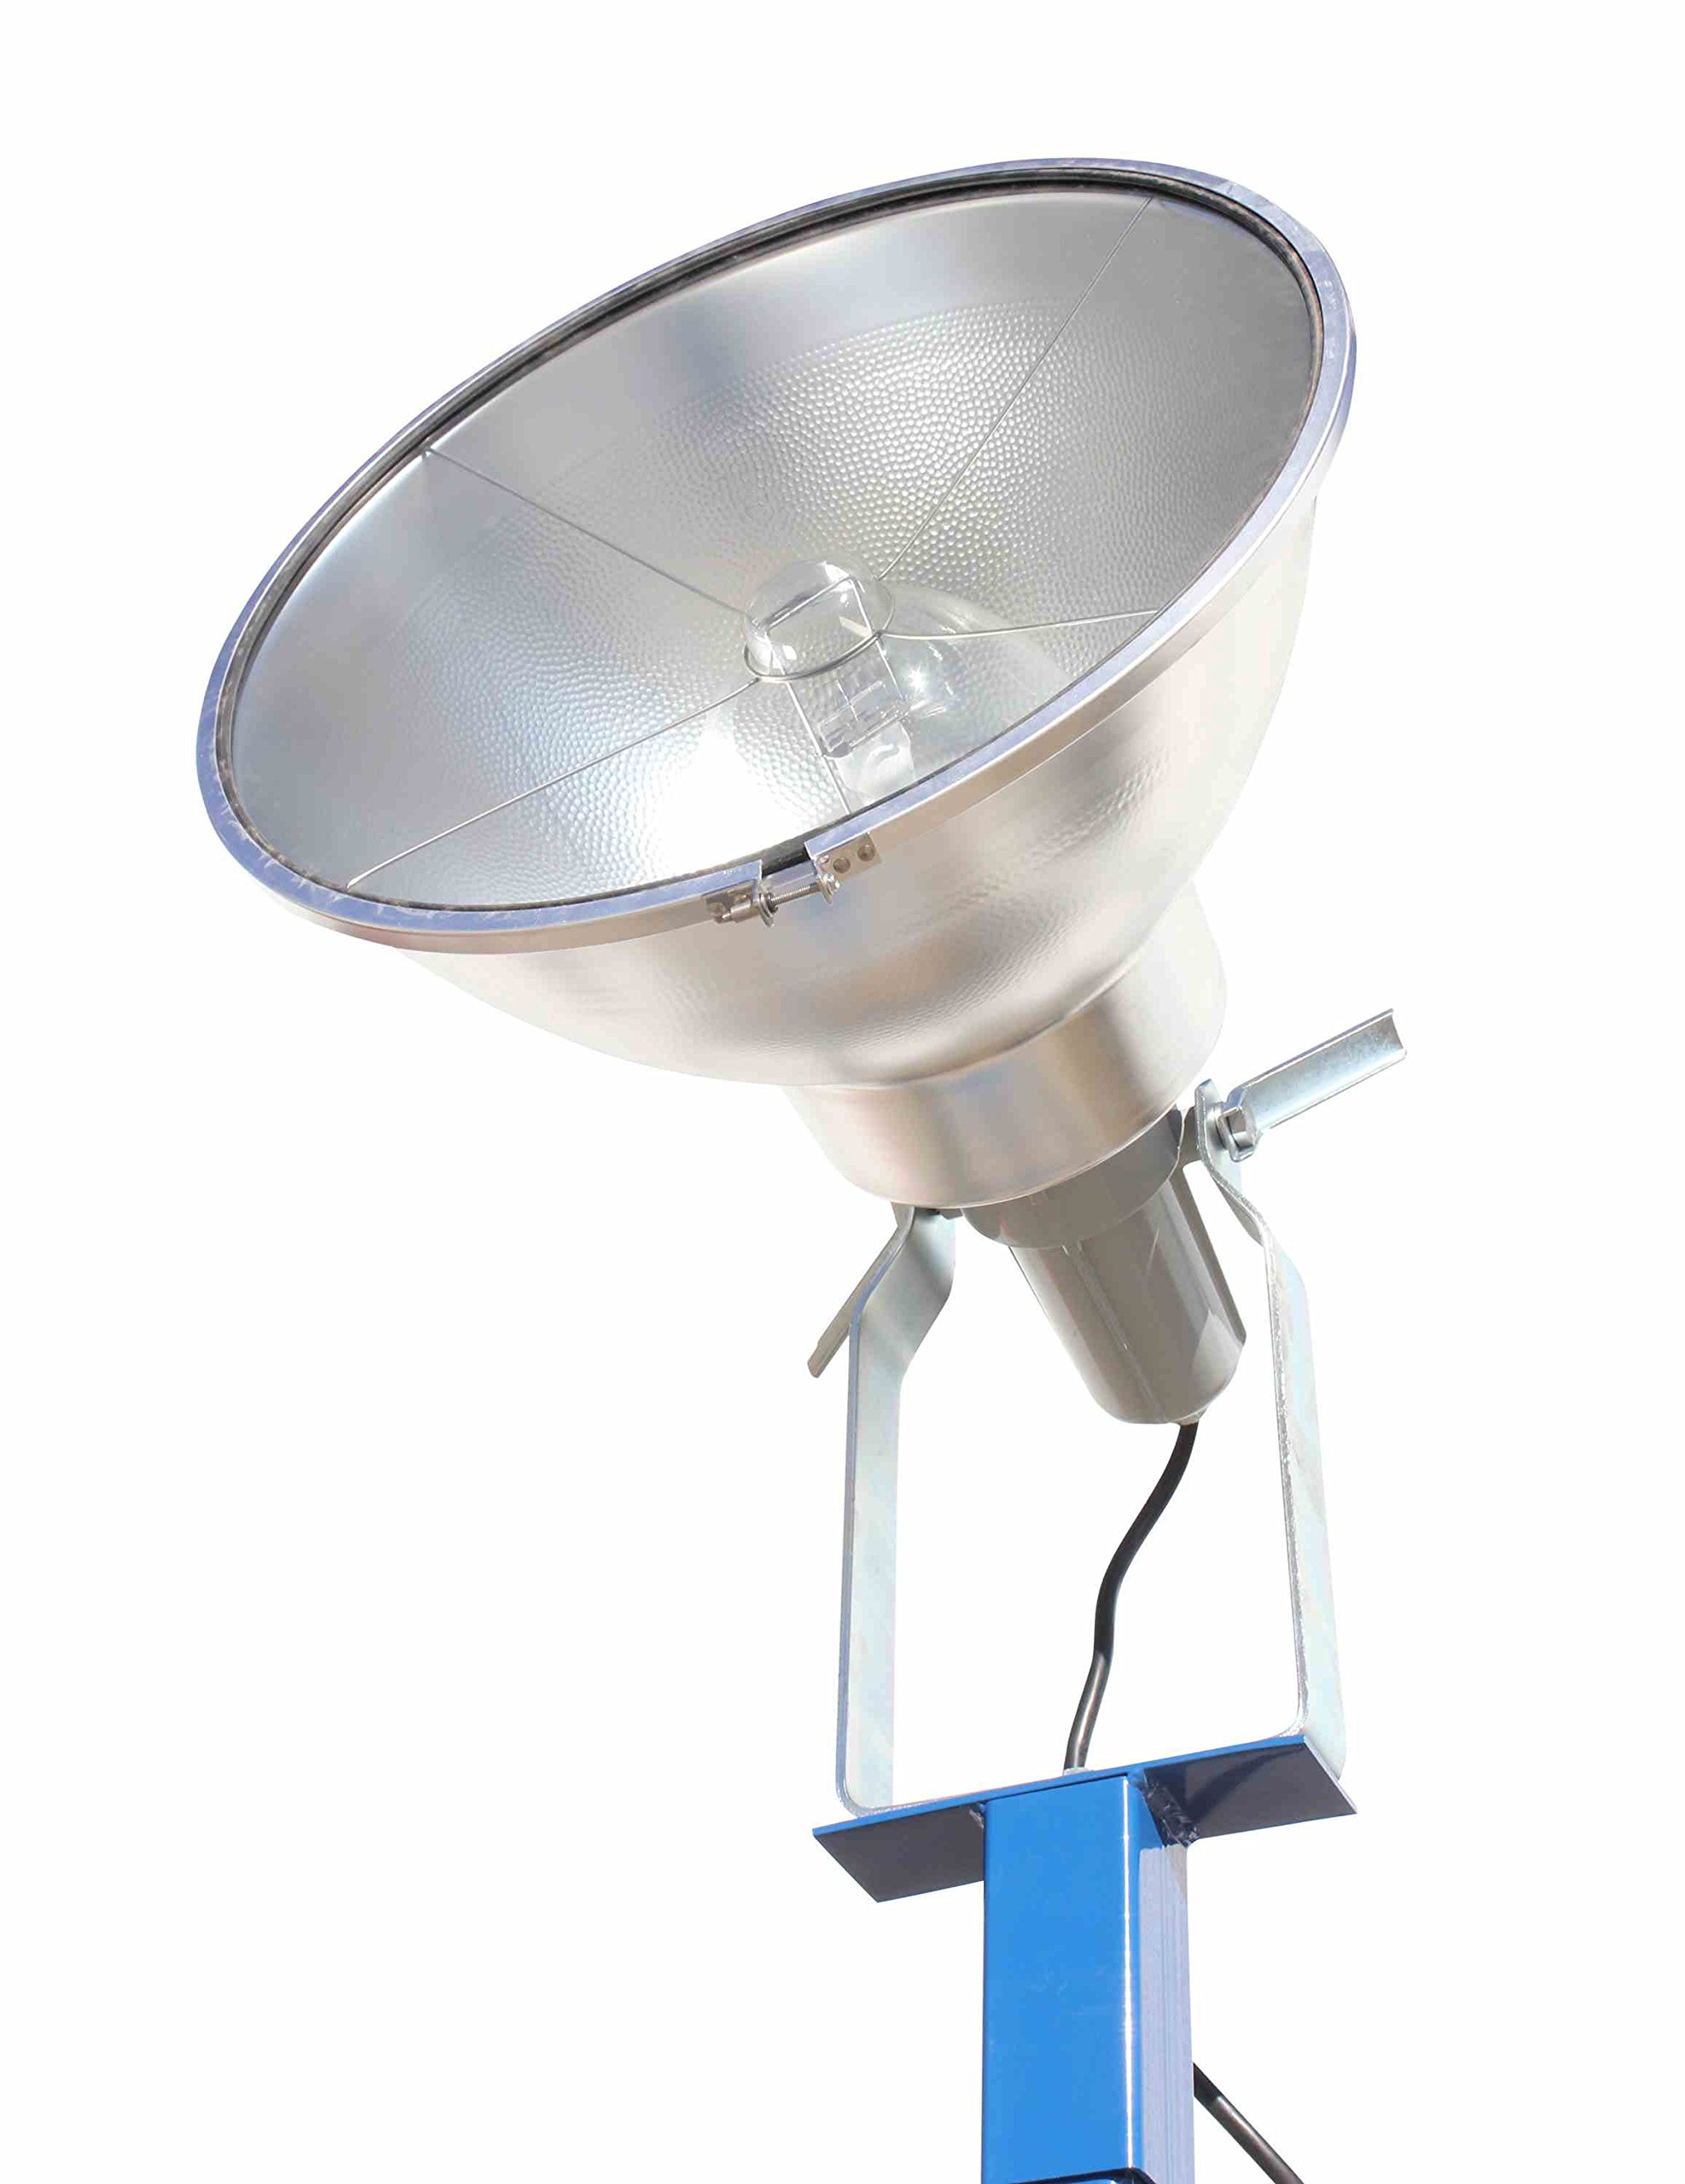 Portable Light Tower - 1000 Watt Metal Halide - Covers 23,000 SF - Extends to 12 feet(-240 Volts) by Larson Electronics (Image #5)